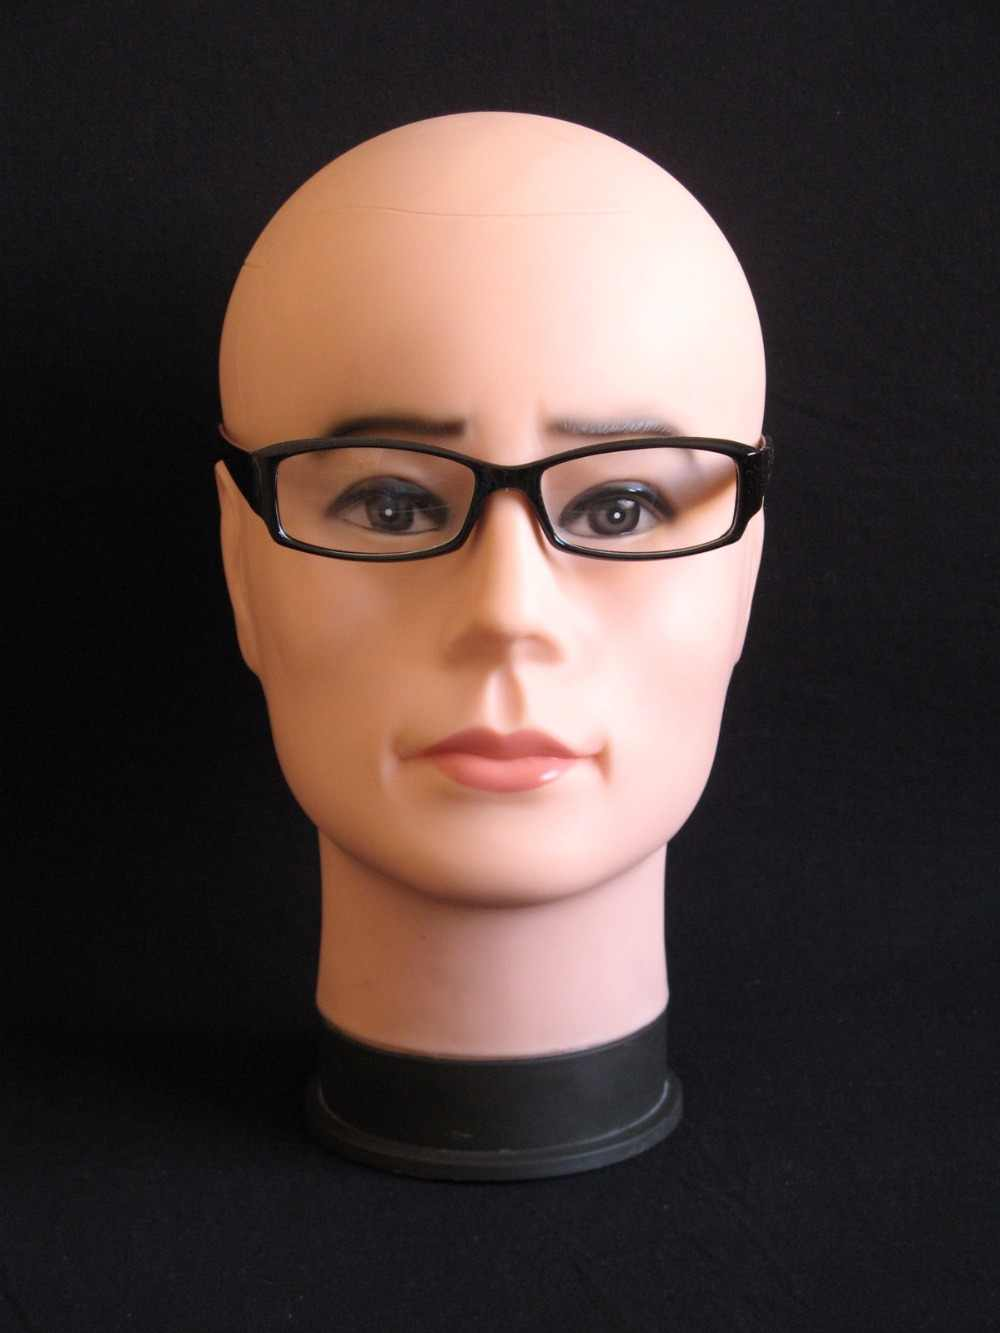 Realistic Plastic Male Mannequin Dummy Head For Hat & Glass  Display, Manikin Heads